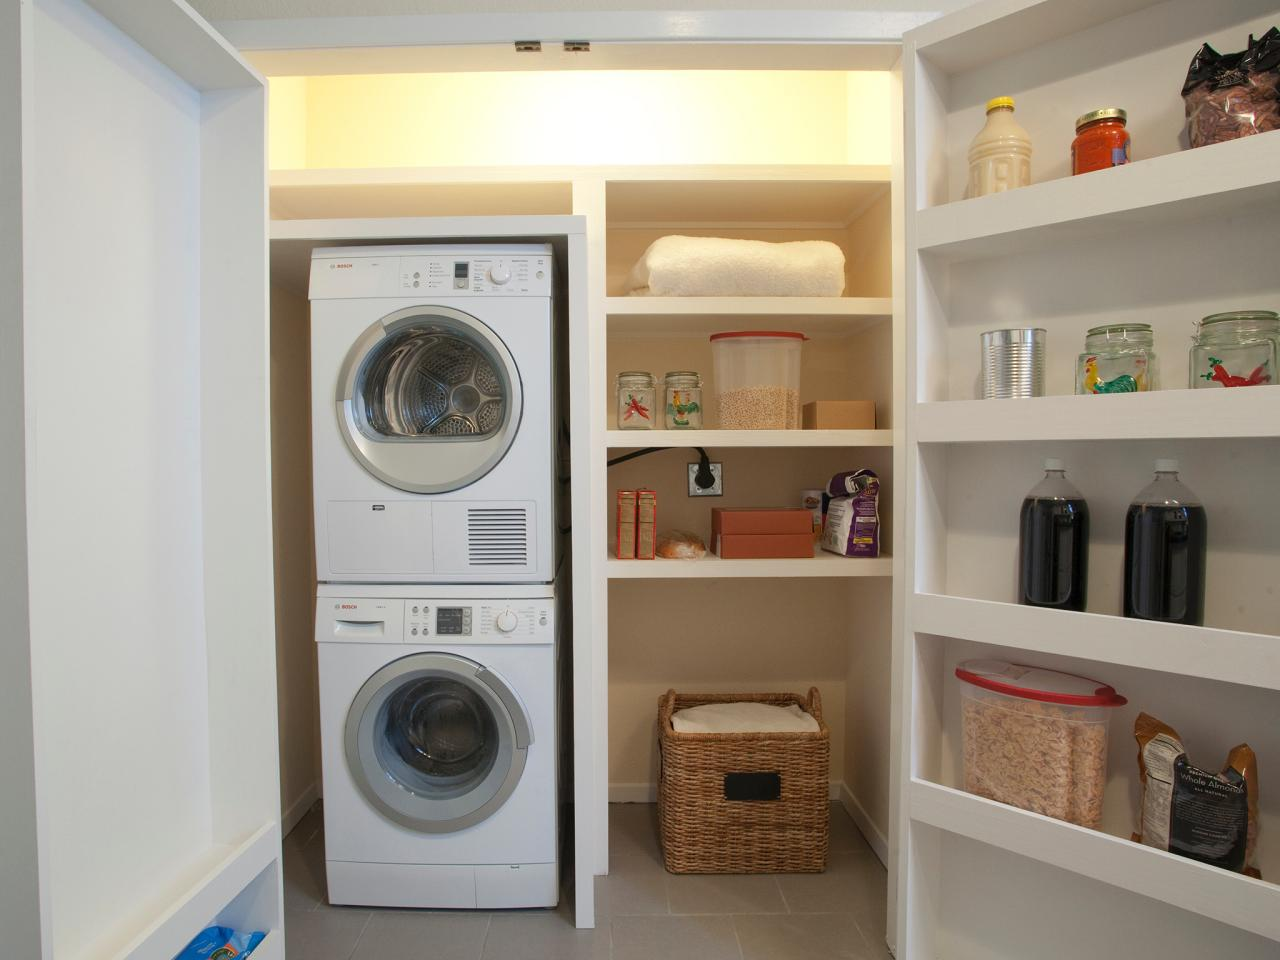 Awesome Large Laundry Room Design With Wall Storage For Laundry Stuff And  Rcessed Storage For Small Part 60